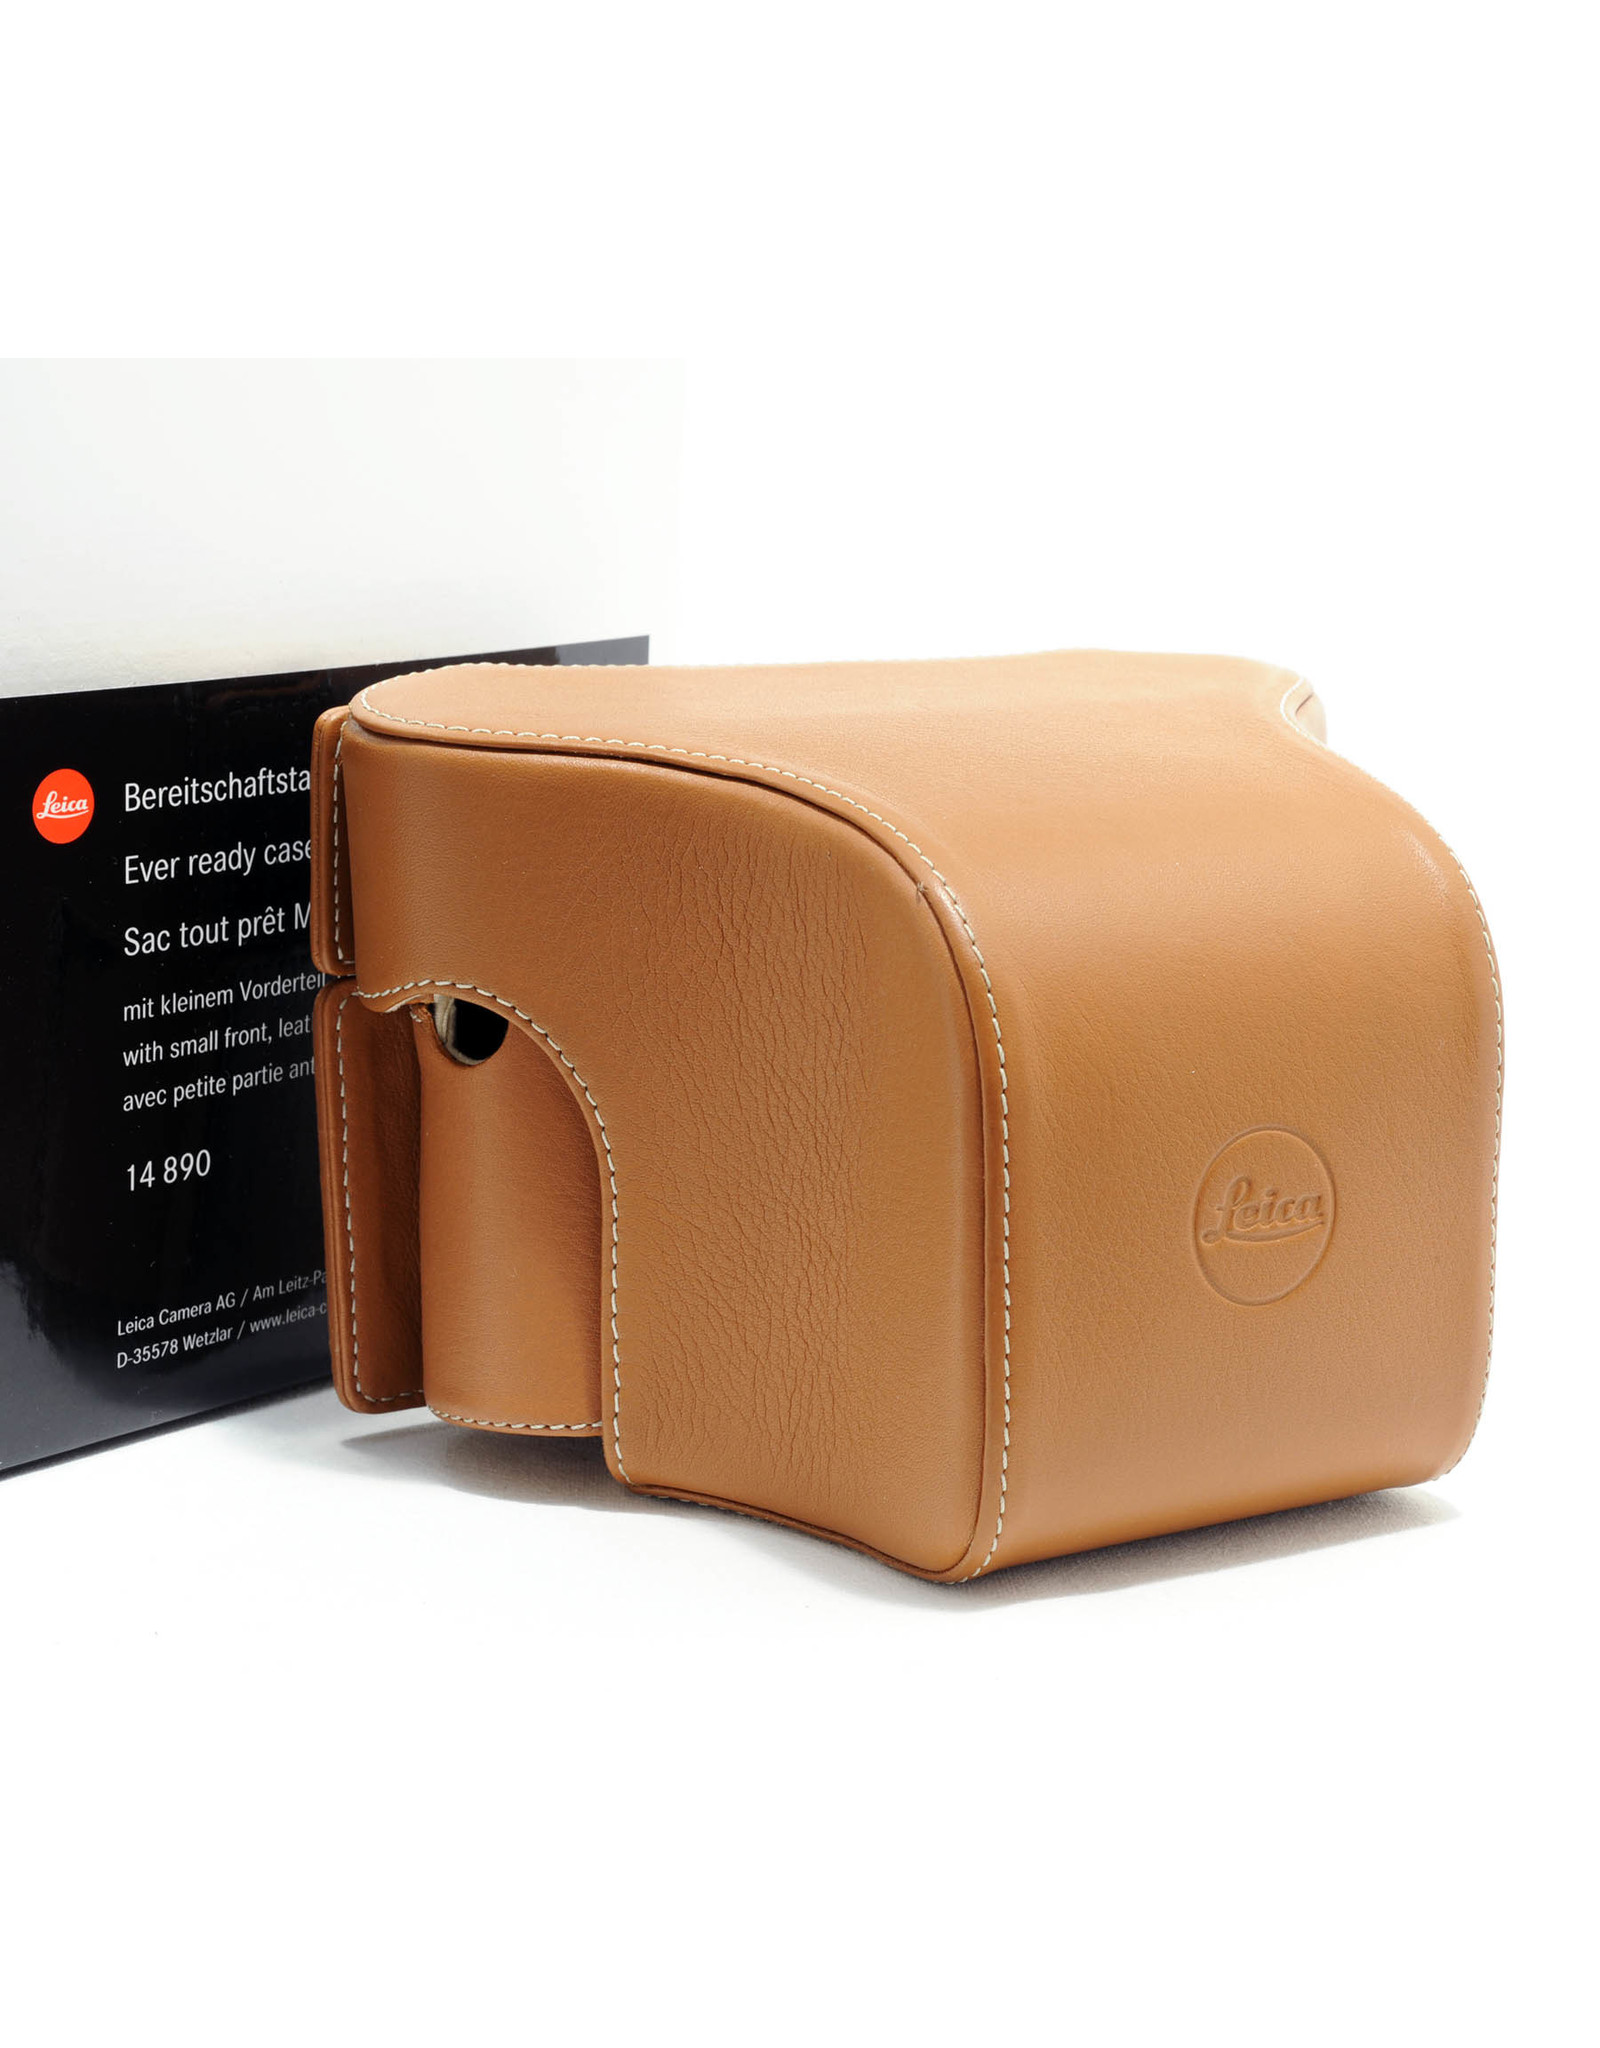 Leica Leica Ever Ready Case M/MP (Typ 240) in Cognac Leather